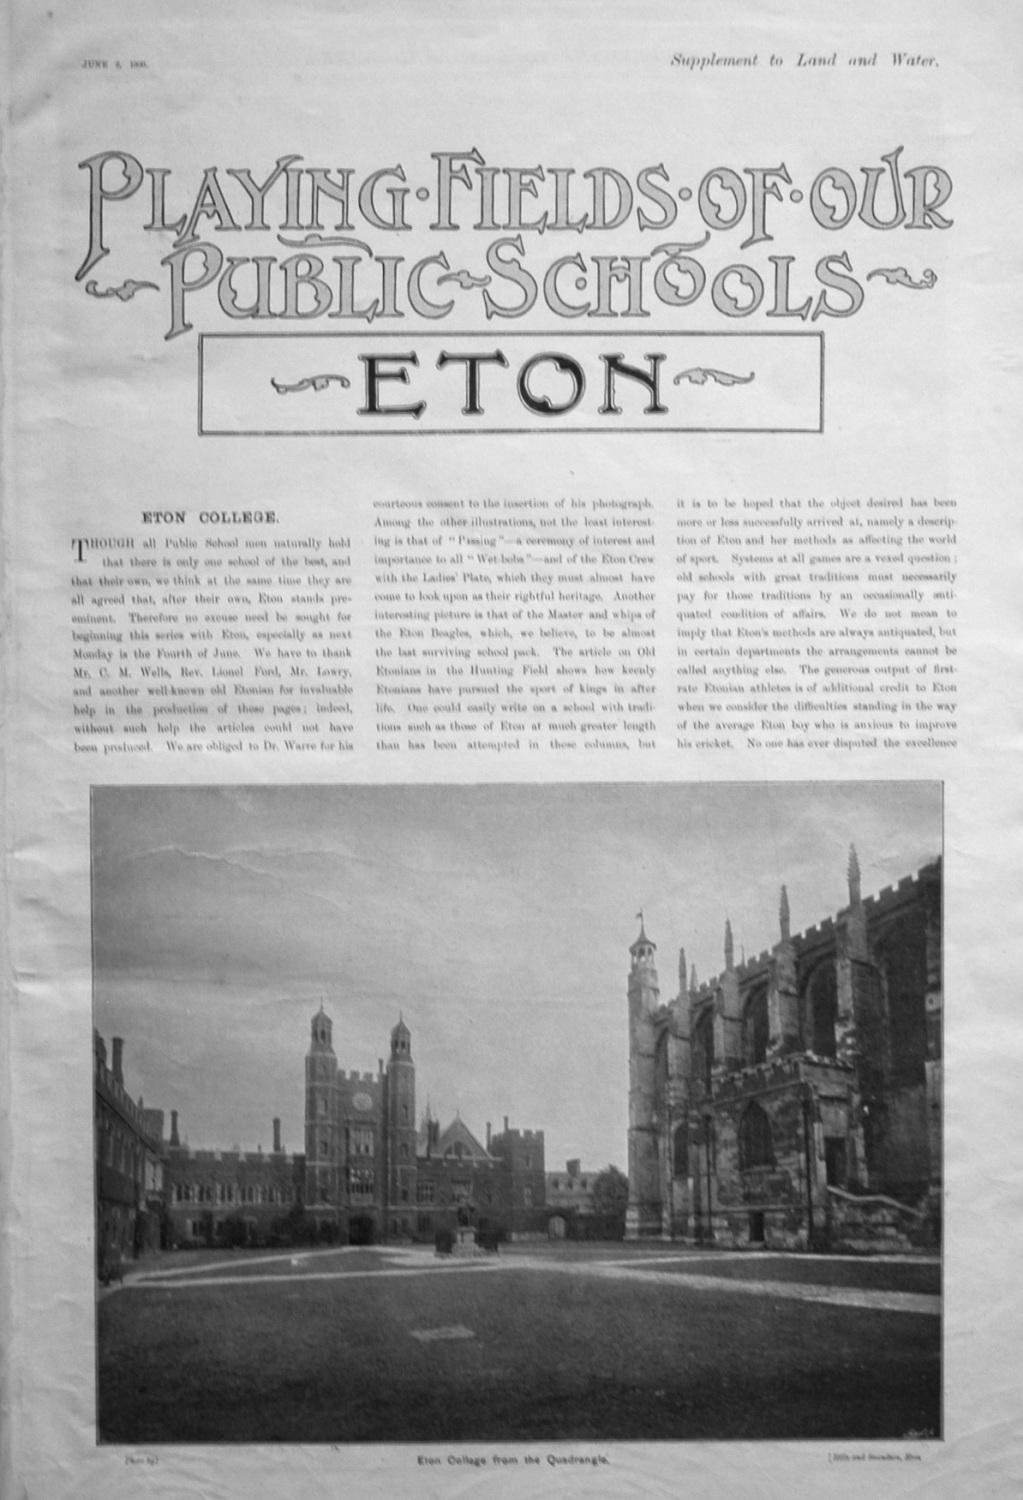 Playing Fields of our Public Schools. June 2nd 1900.